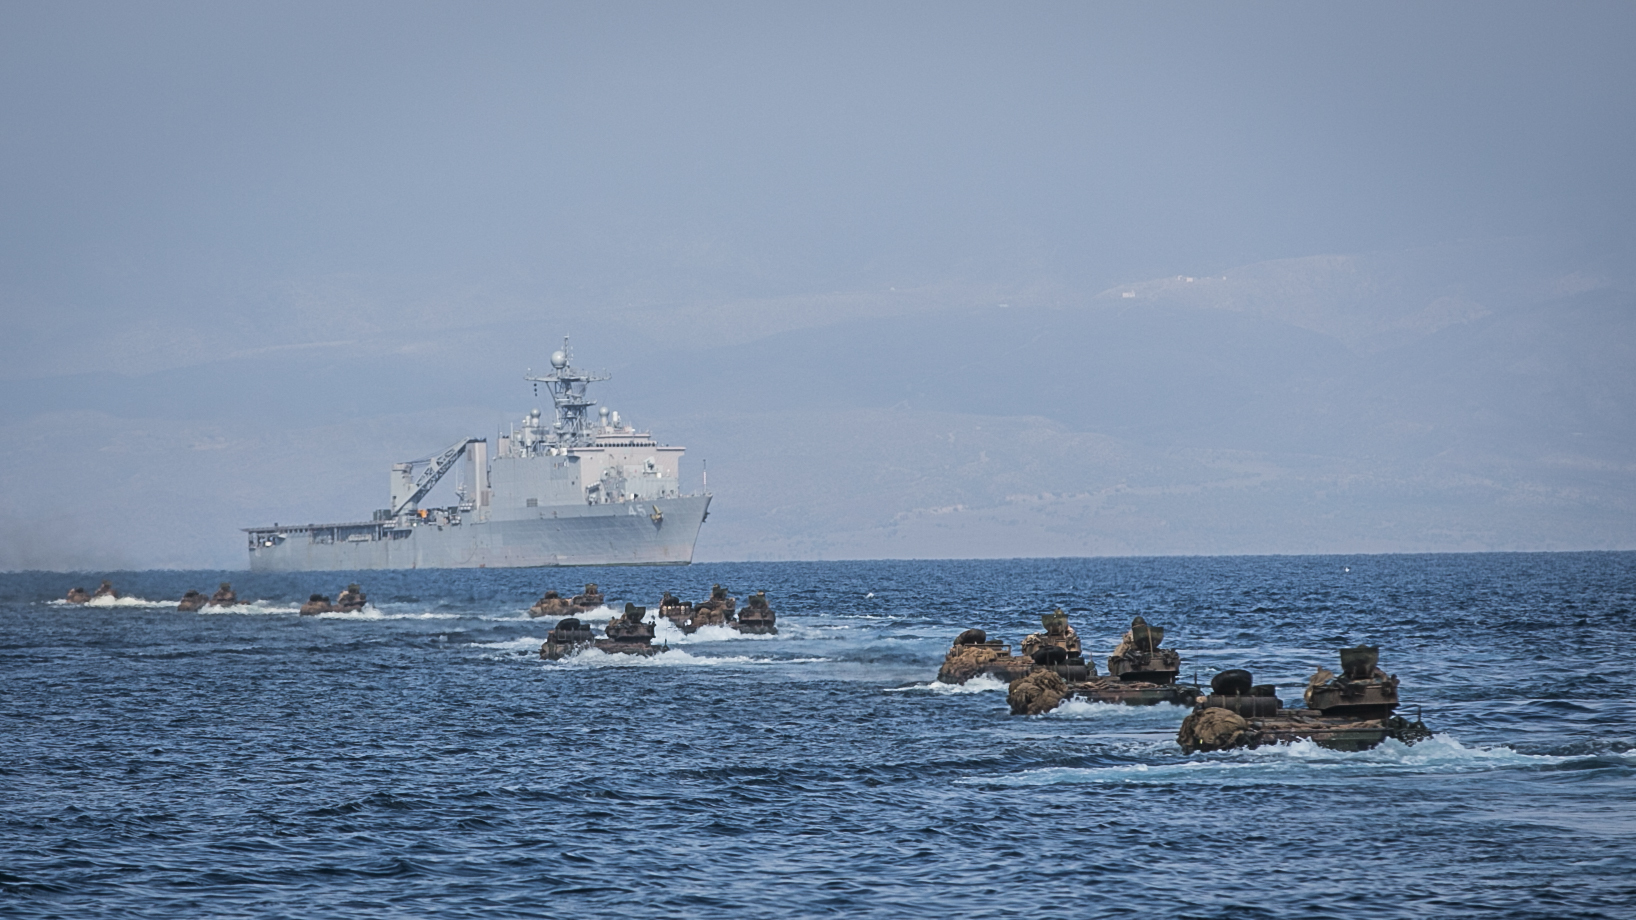 U.S. Marines with Battalion Landing Team, 1st Battalion, 4th Marines, 11th Marine Expeditionary Unit (MEU), advance toward the dock landing ship USS Comstock (LSD 45) via amphibious assault vehicles (AAV) after completing training for Exercise Alligator Dagger at Arta Beach, Djibouti, Dec. 21, 2016. US Marine Corps Photo